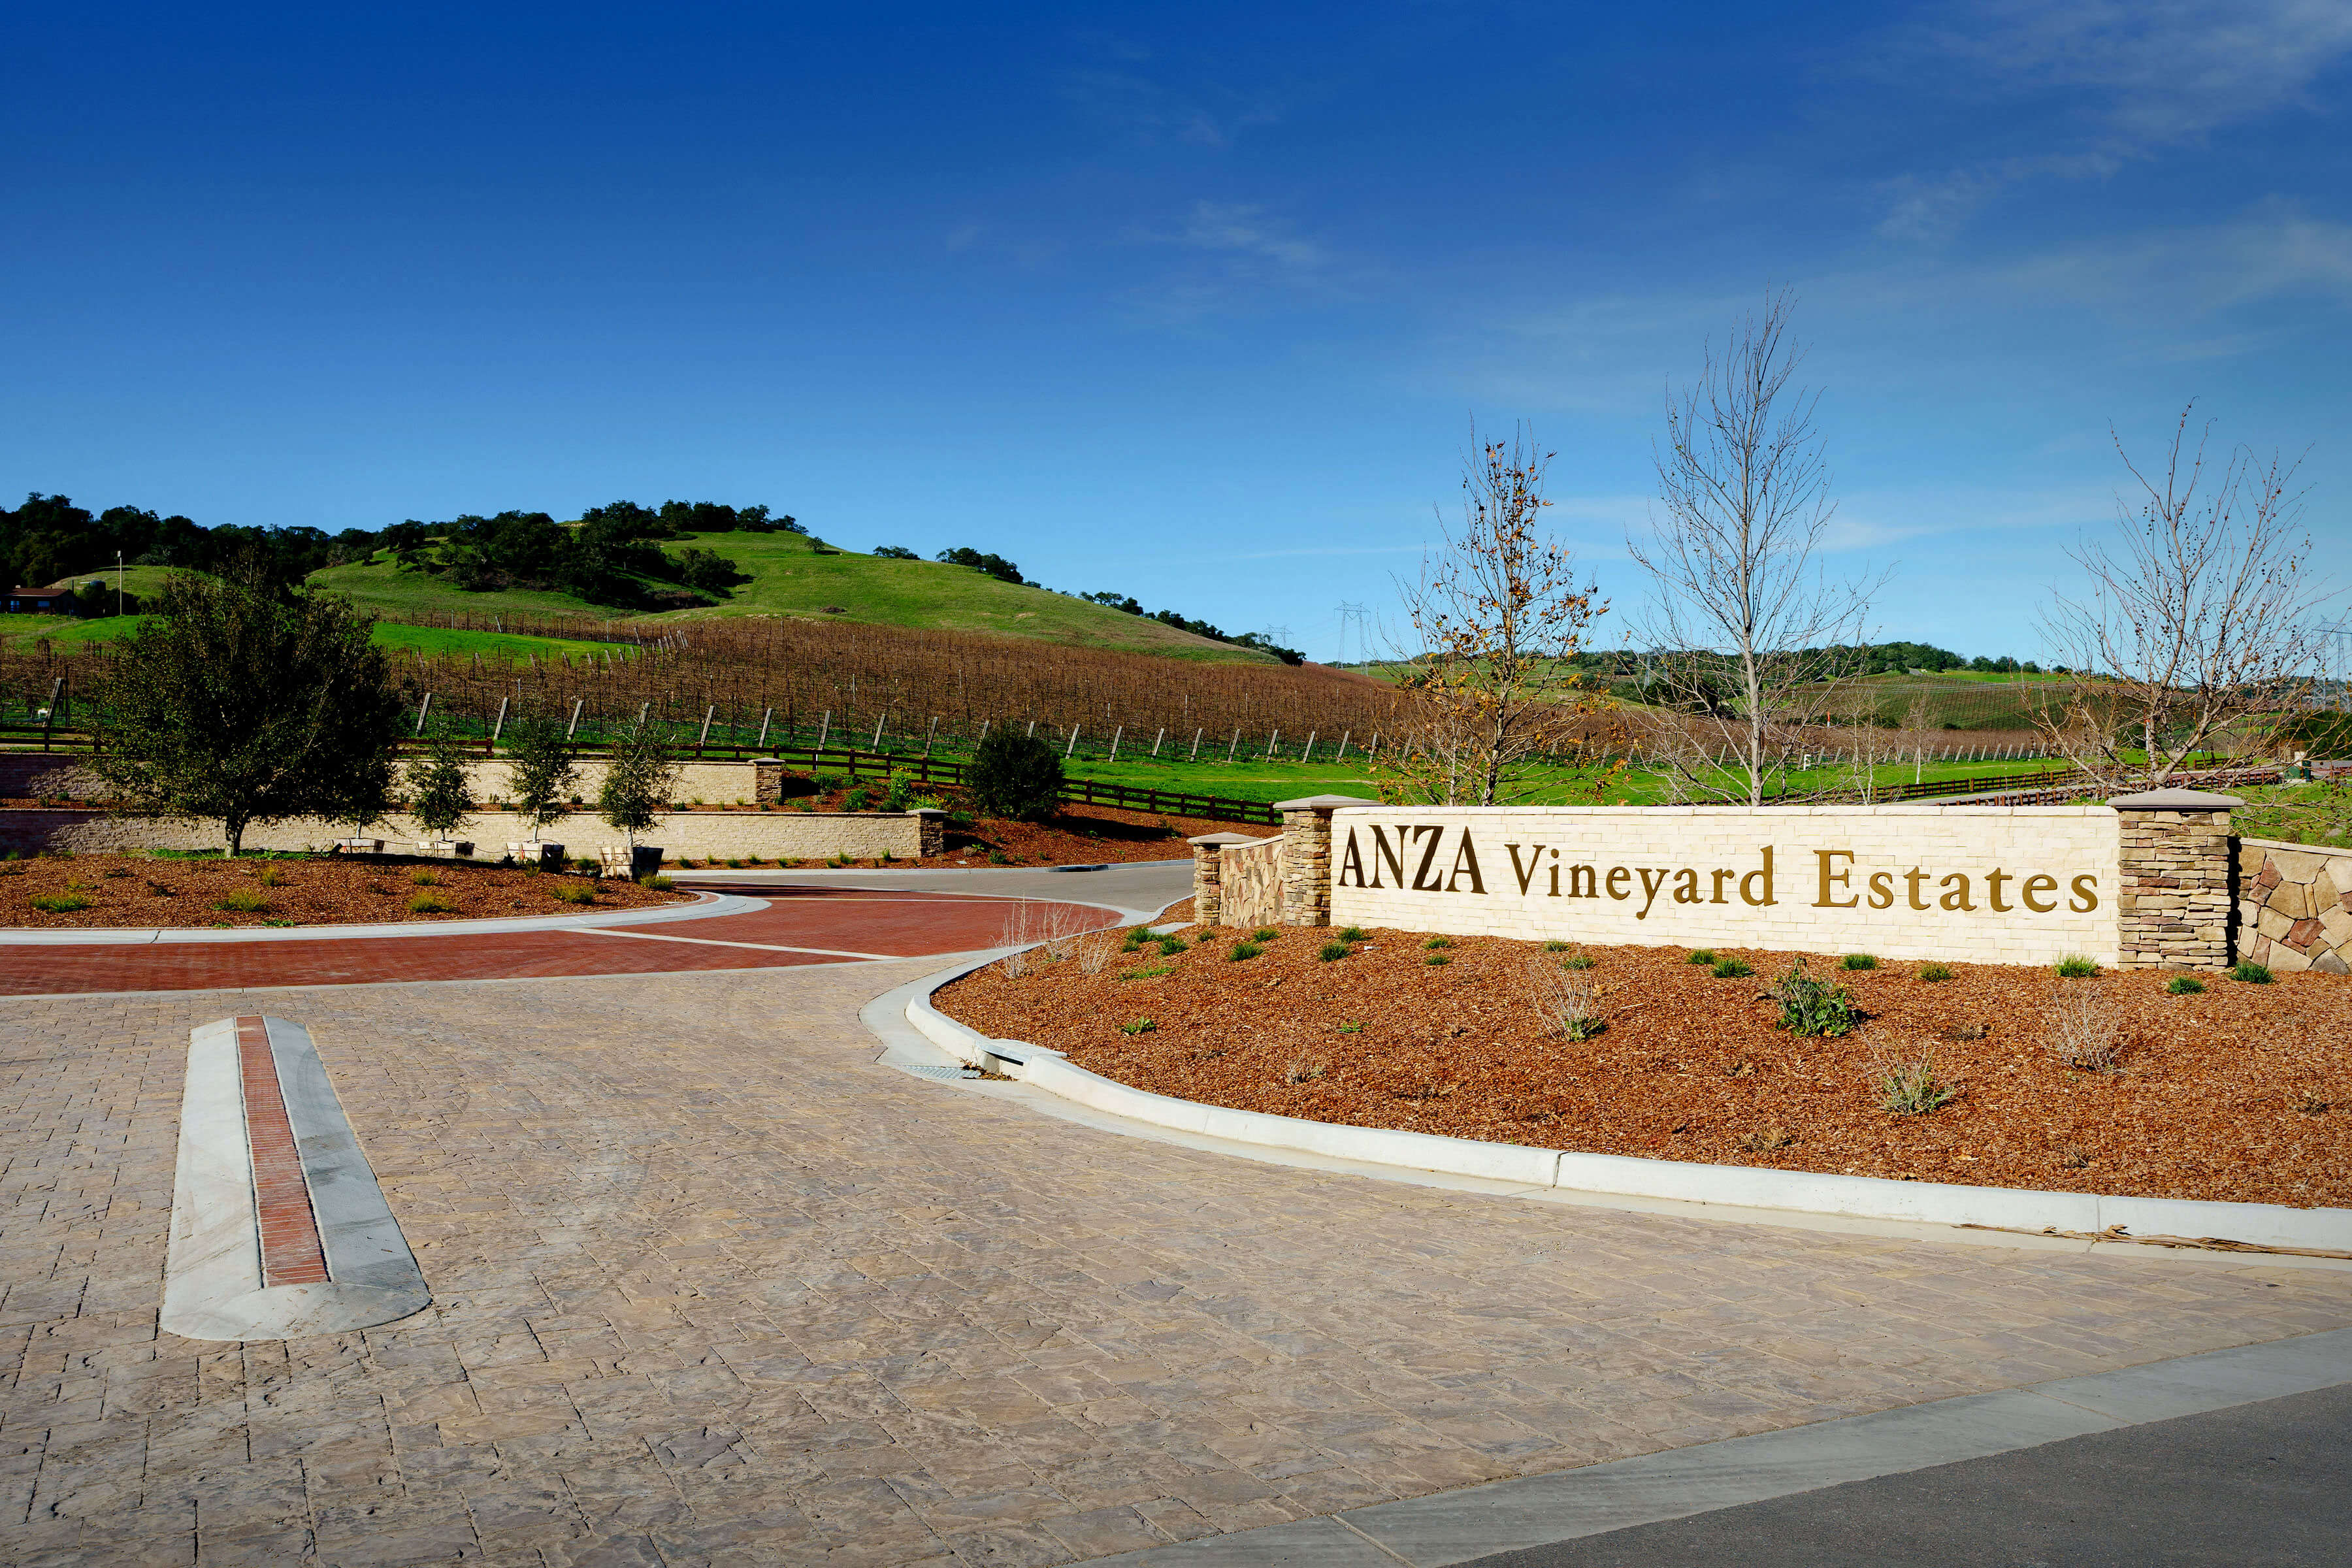 Anza Vineyard Estates